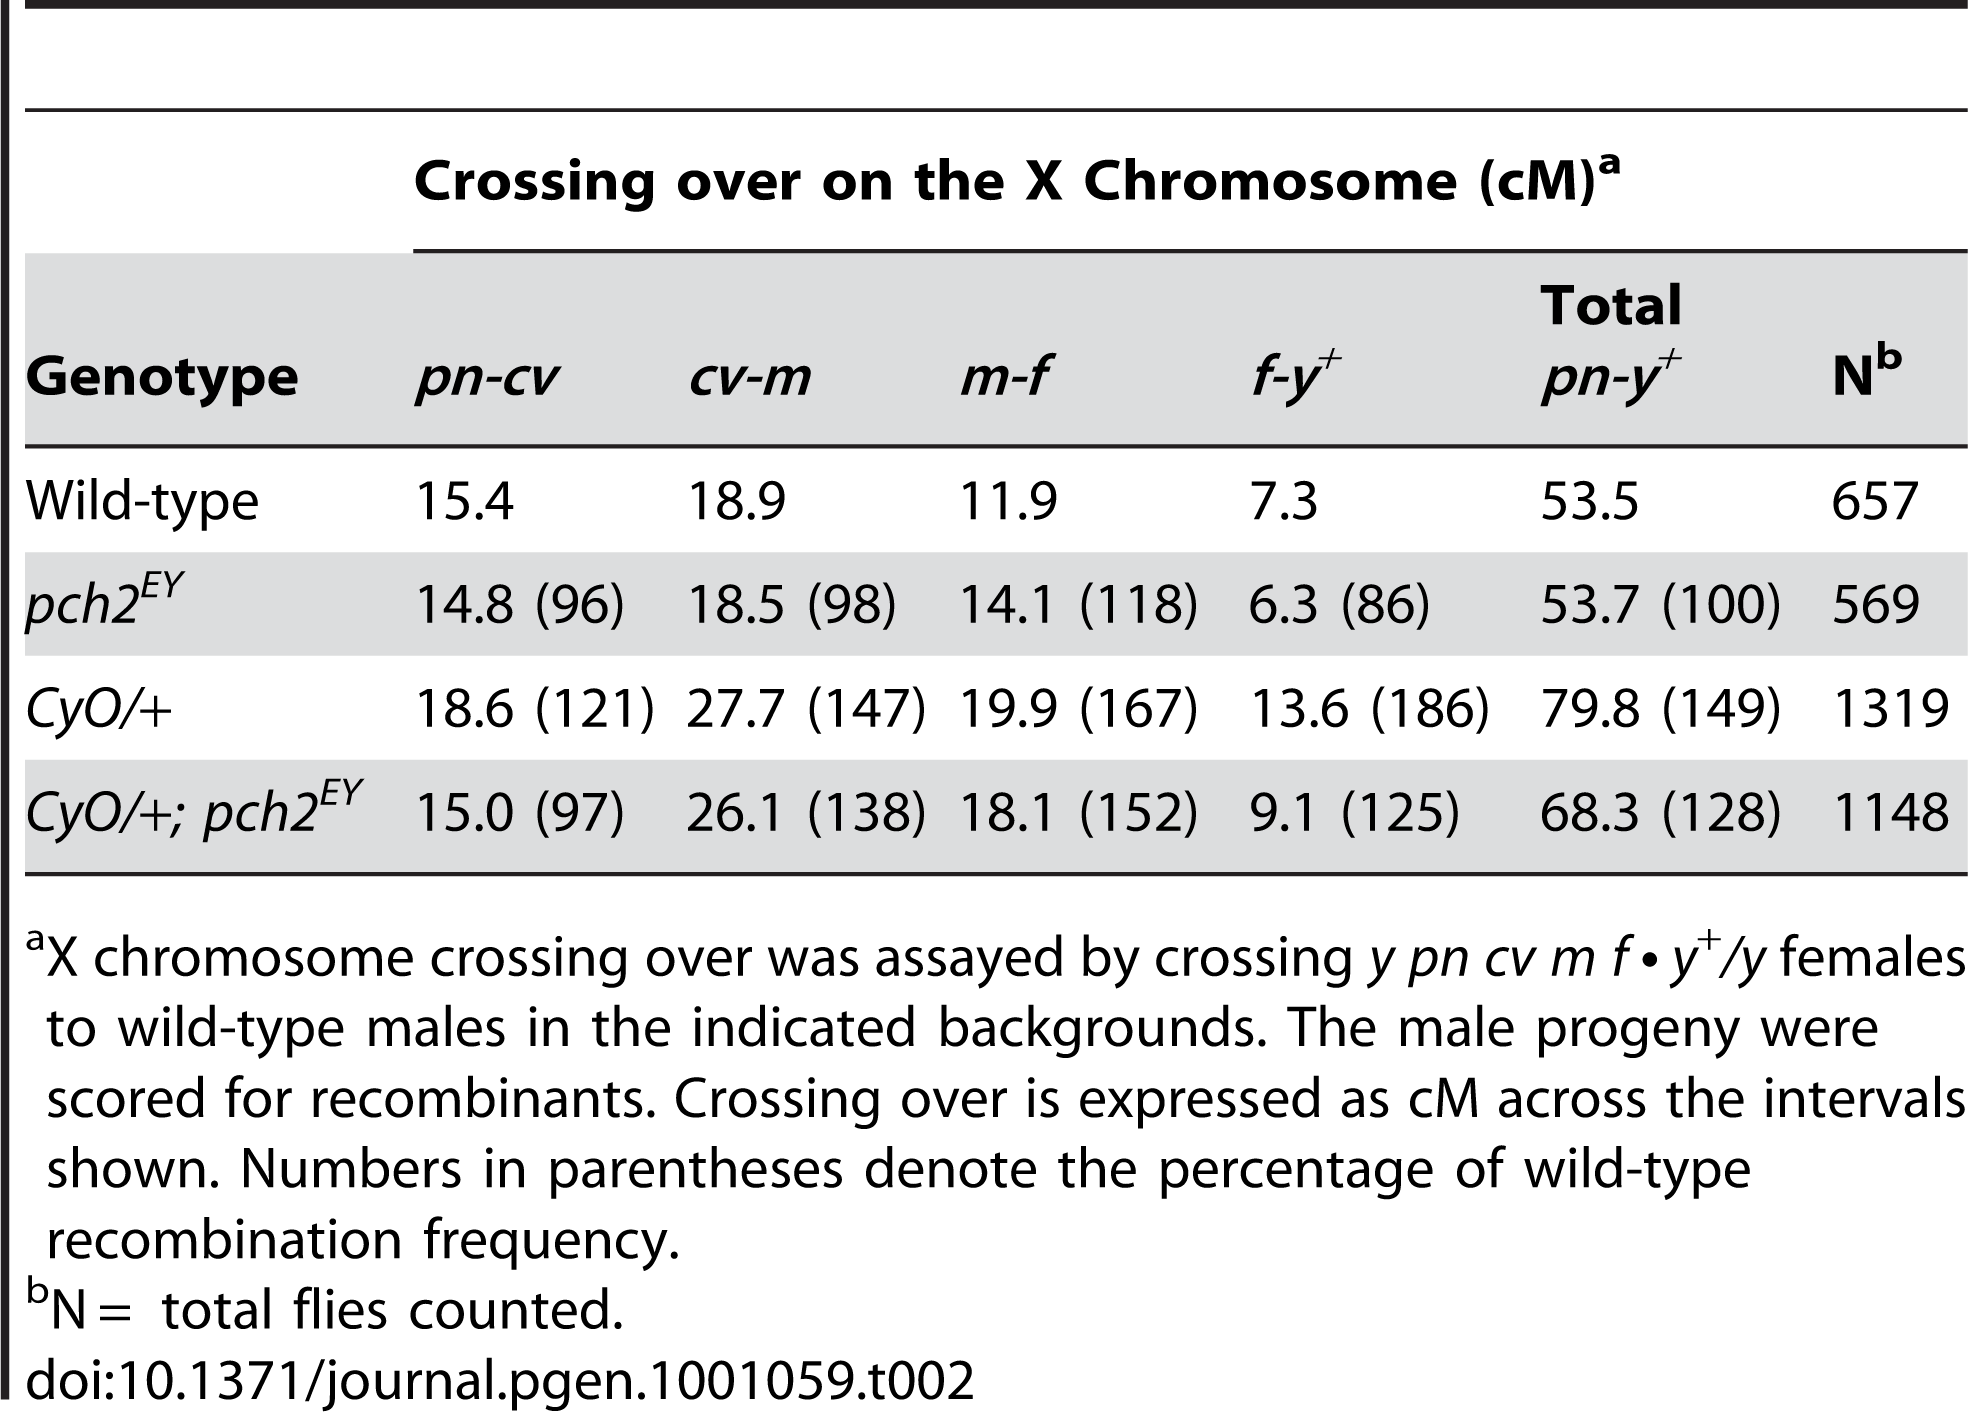 Effect of <i>pch2</i> on crossing over on the X-chromosome.